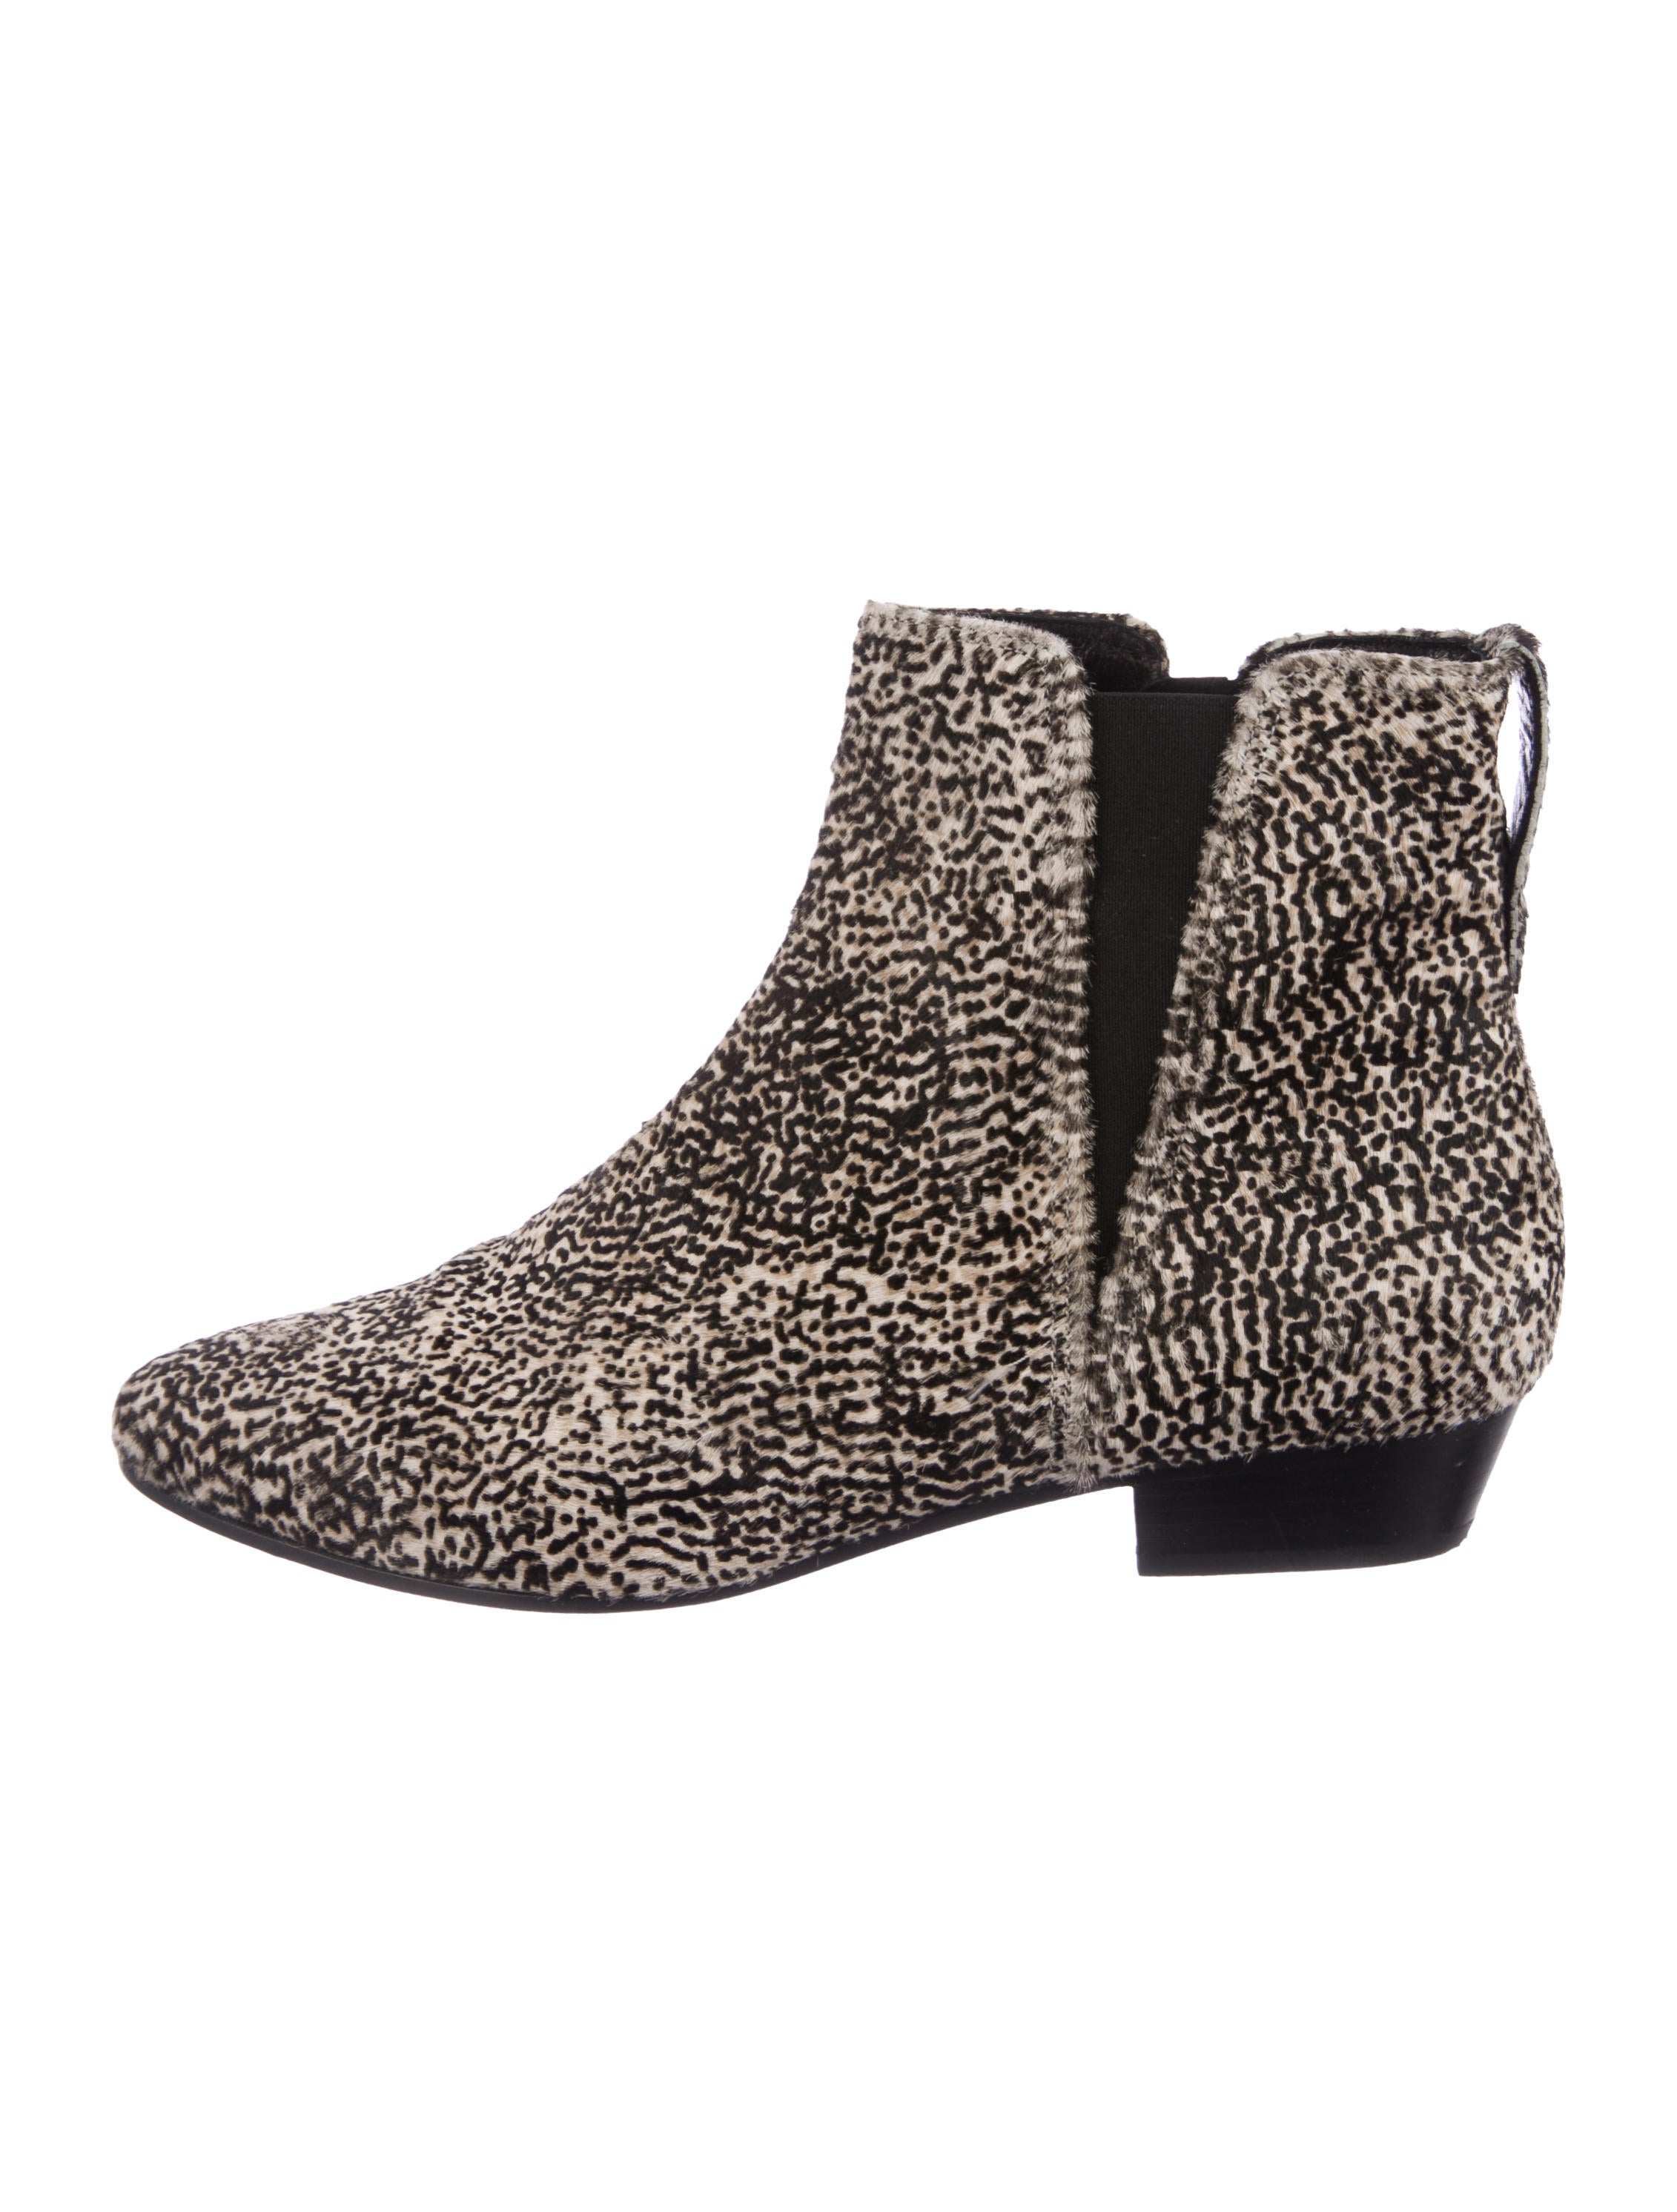 Étoile Isabel Marant Ponyhair Pointed-Toe Booties outlet shop offer free shipping sale real outlet 2014 new u8rxsz